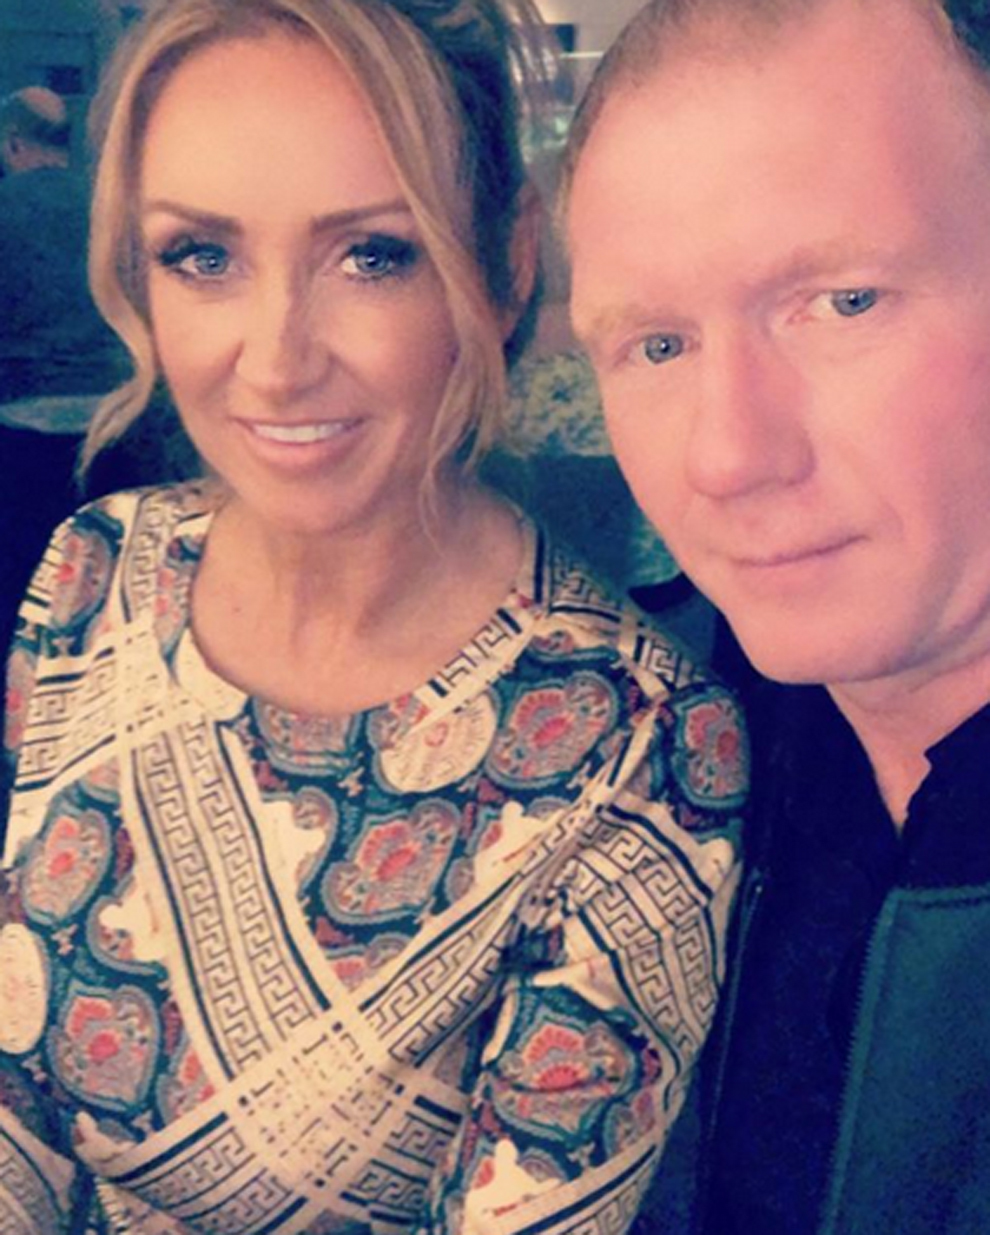 Paul Scholes and Claire when they were happy